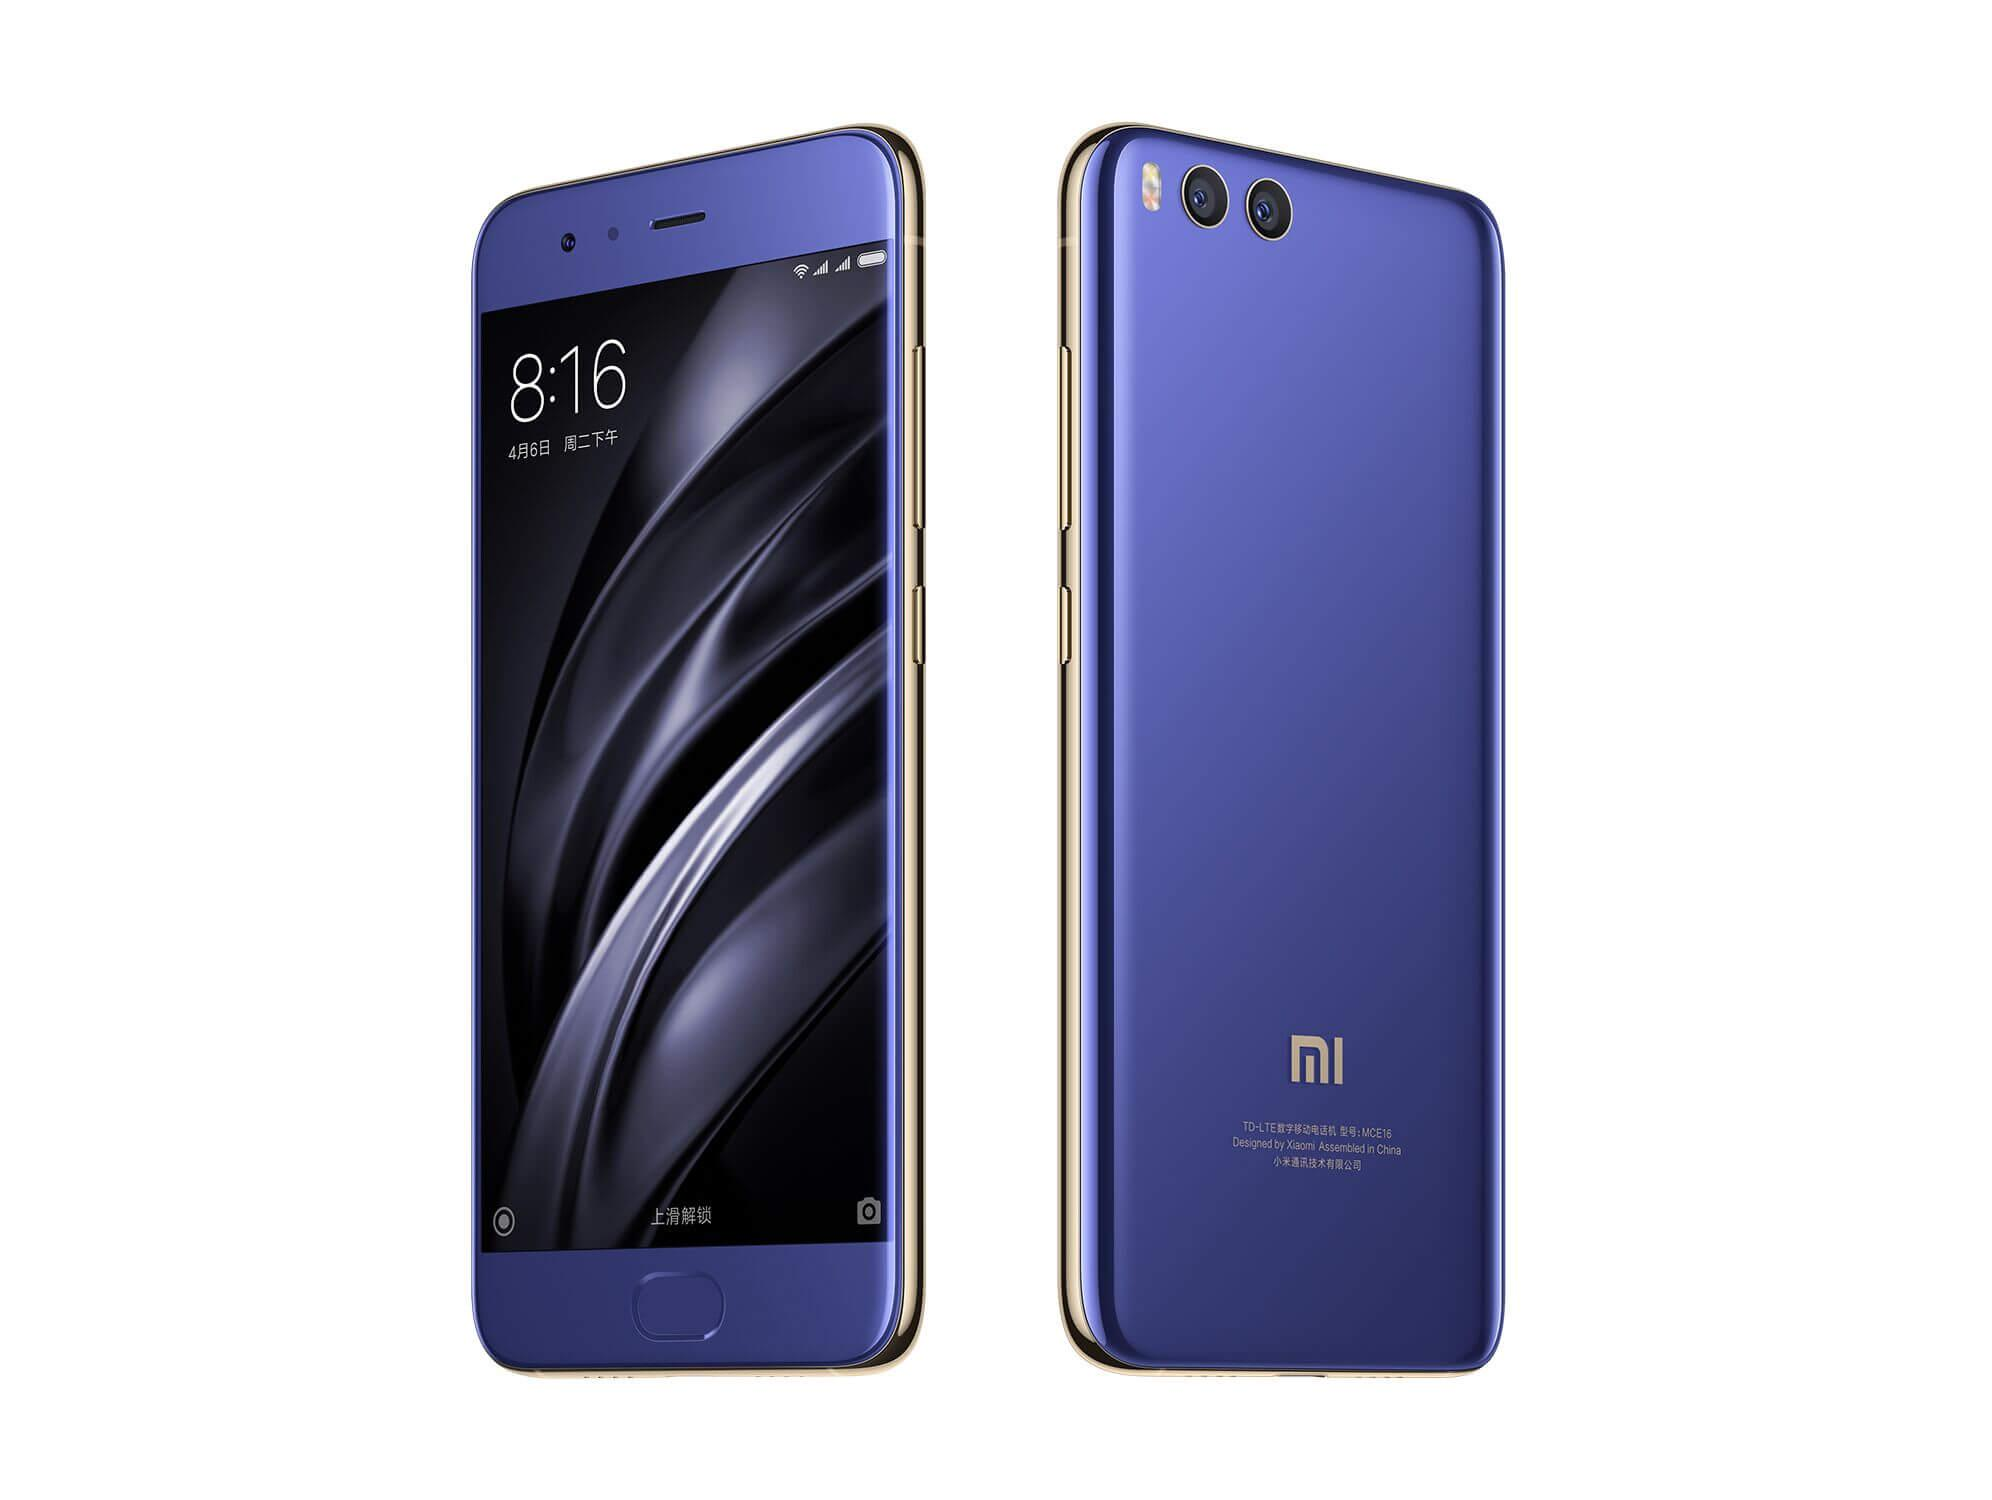 Xiaomi-Mi-6-is-now-official